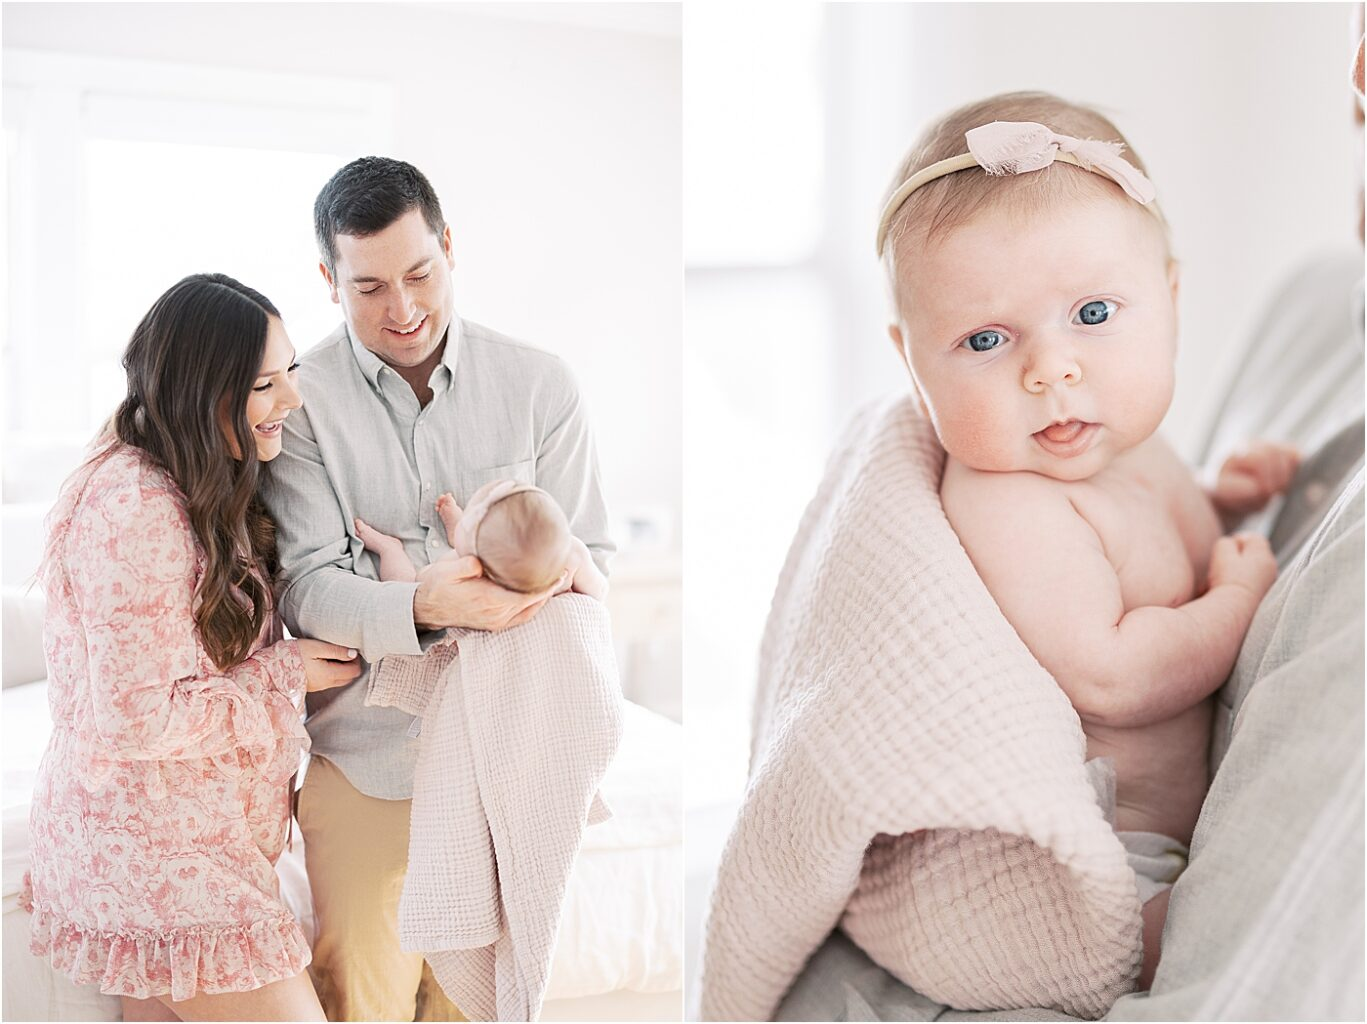 Lifestyle newborn photoshoot with Lindsay Konopa Photography in beautiful, bright home in Indianapolis.